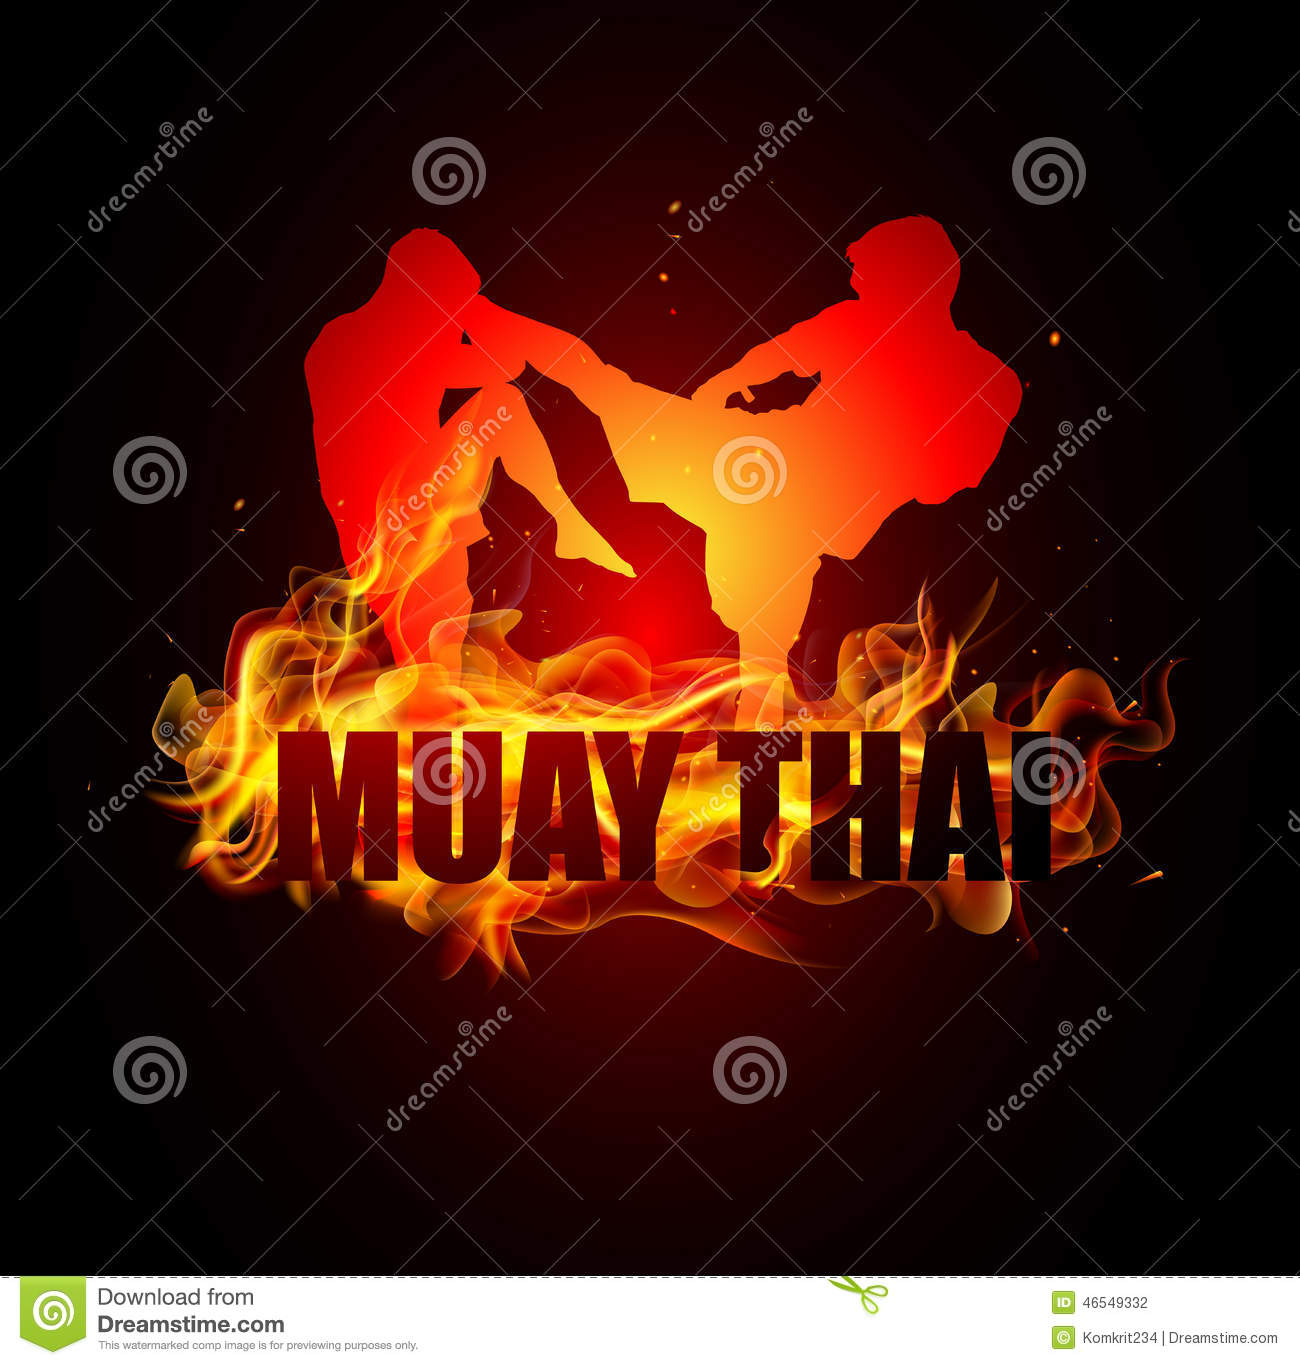 thai boxing is kicking with neck posture of muay thai fire muay thai logo designs muay thai colorado springs